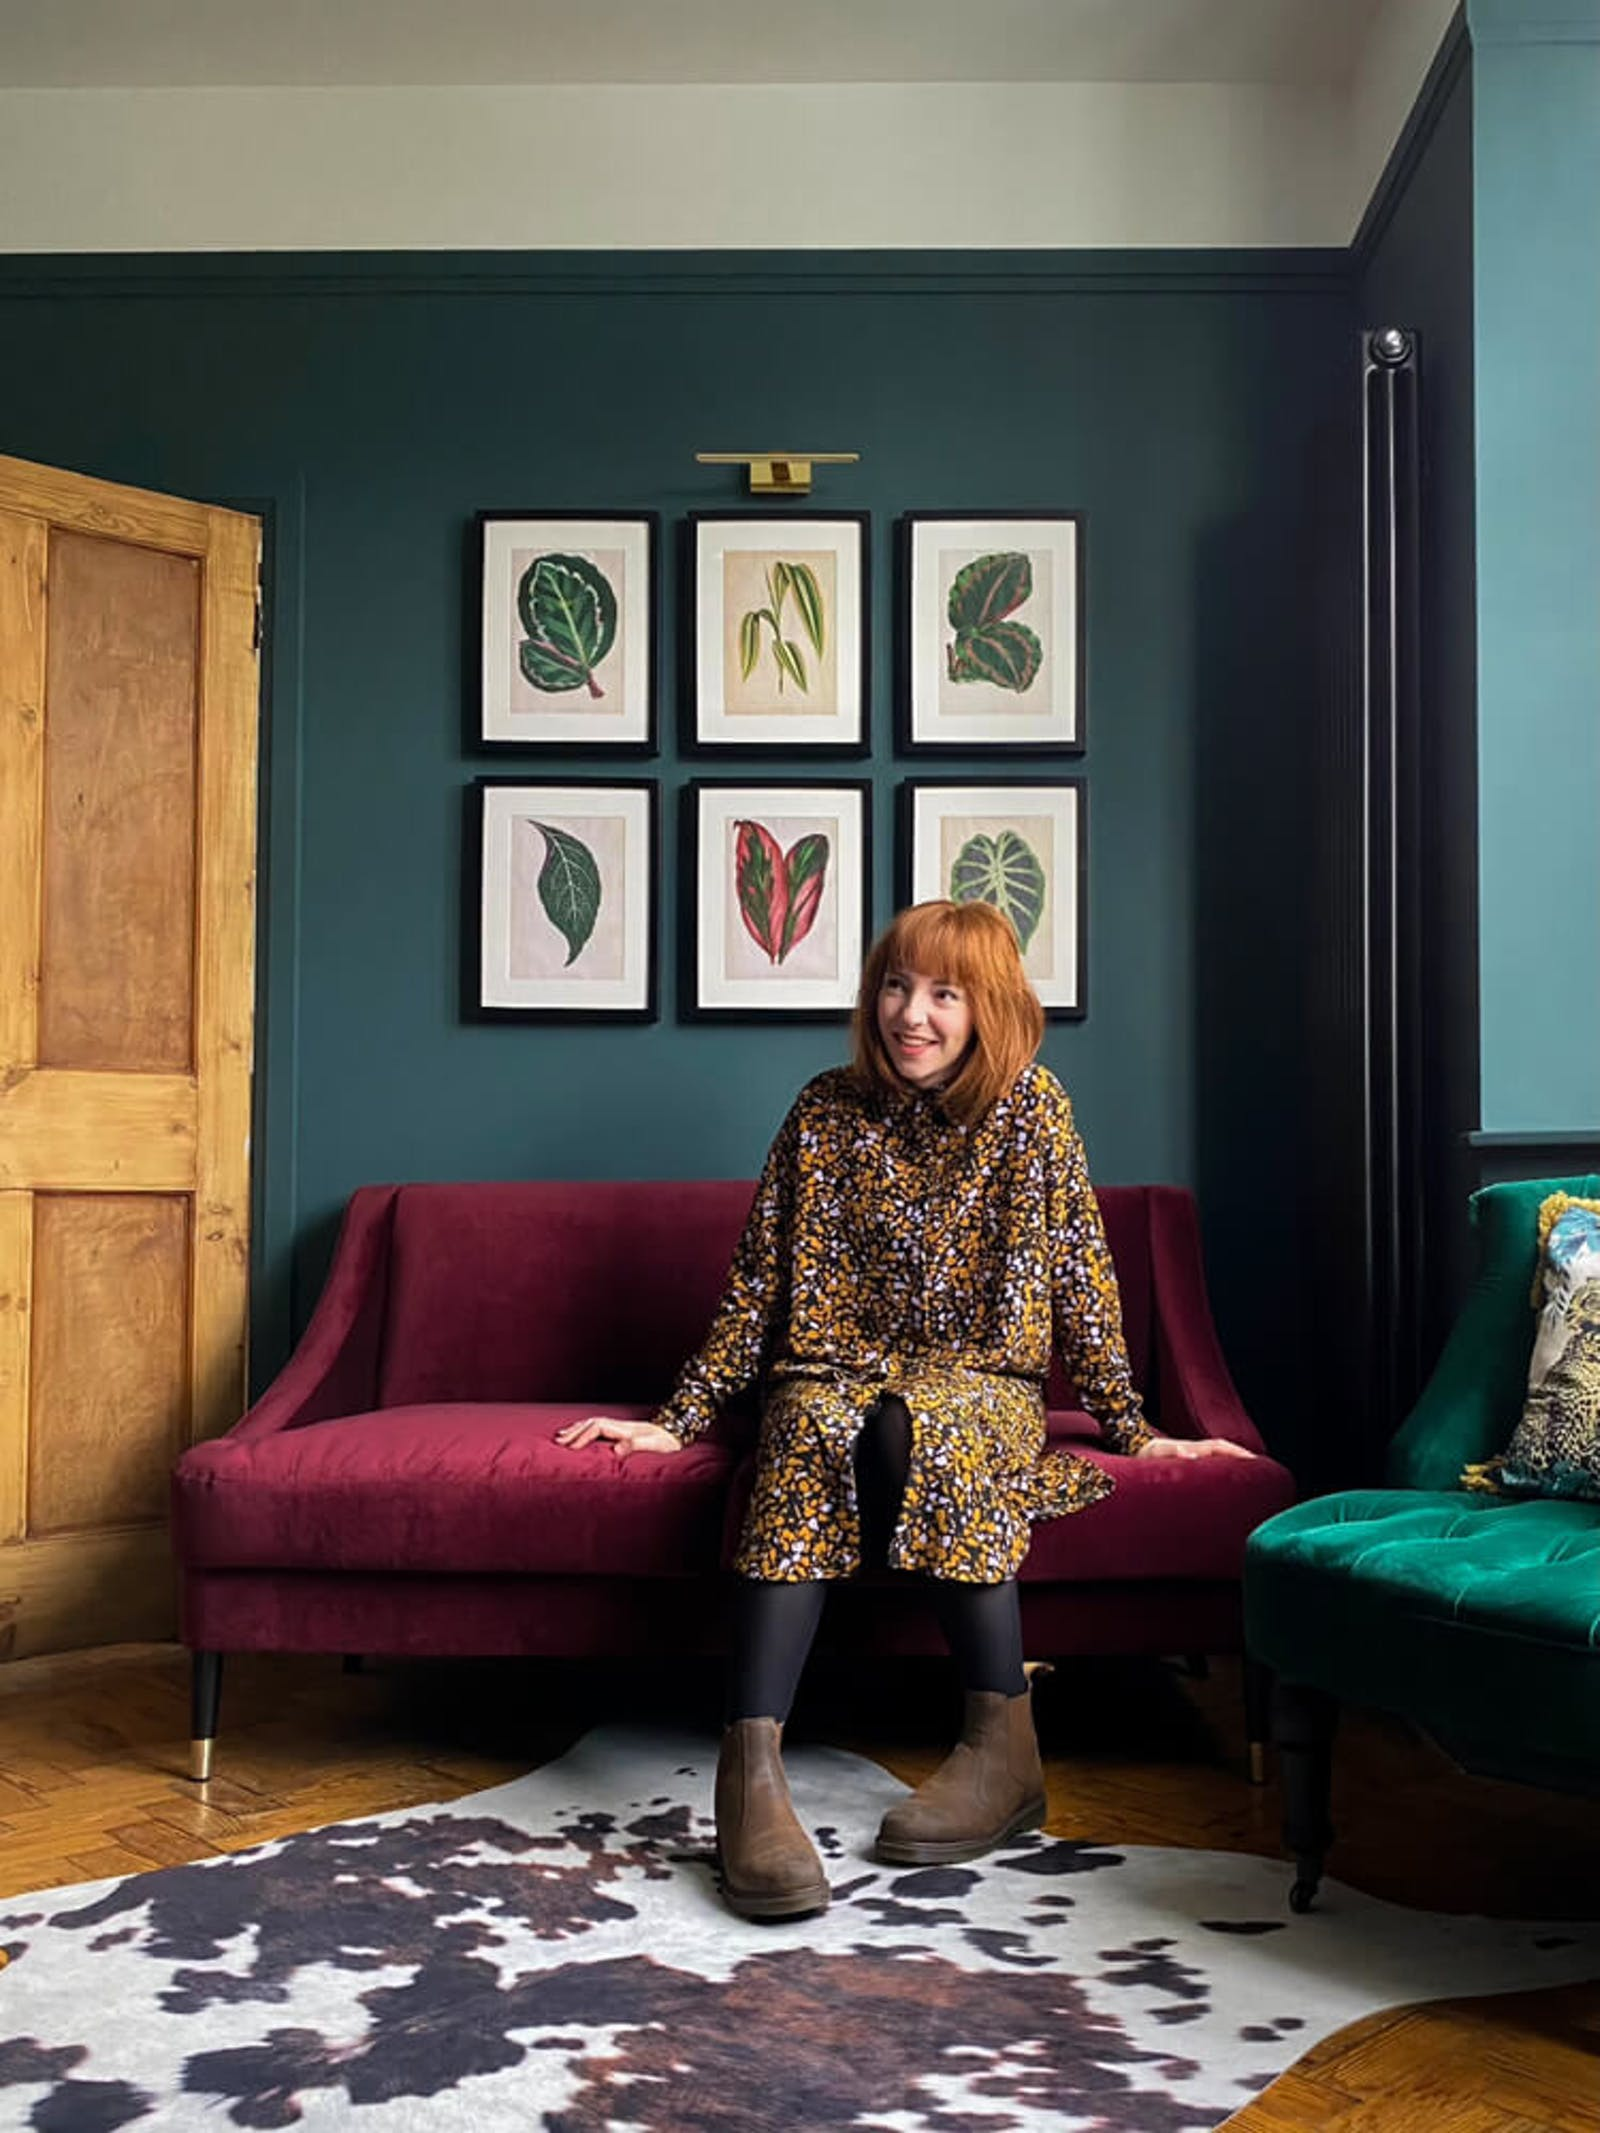 Portrait of lady in living room with velvet sofas and dark green walls